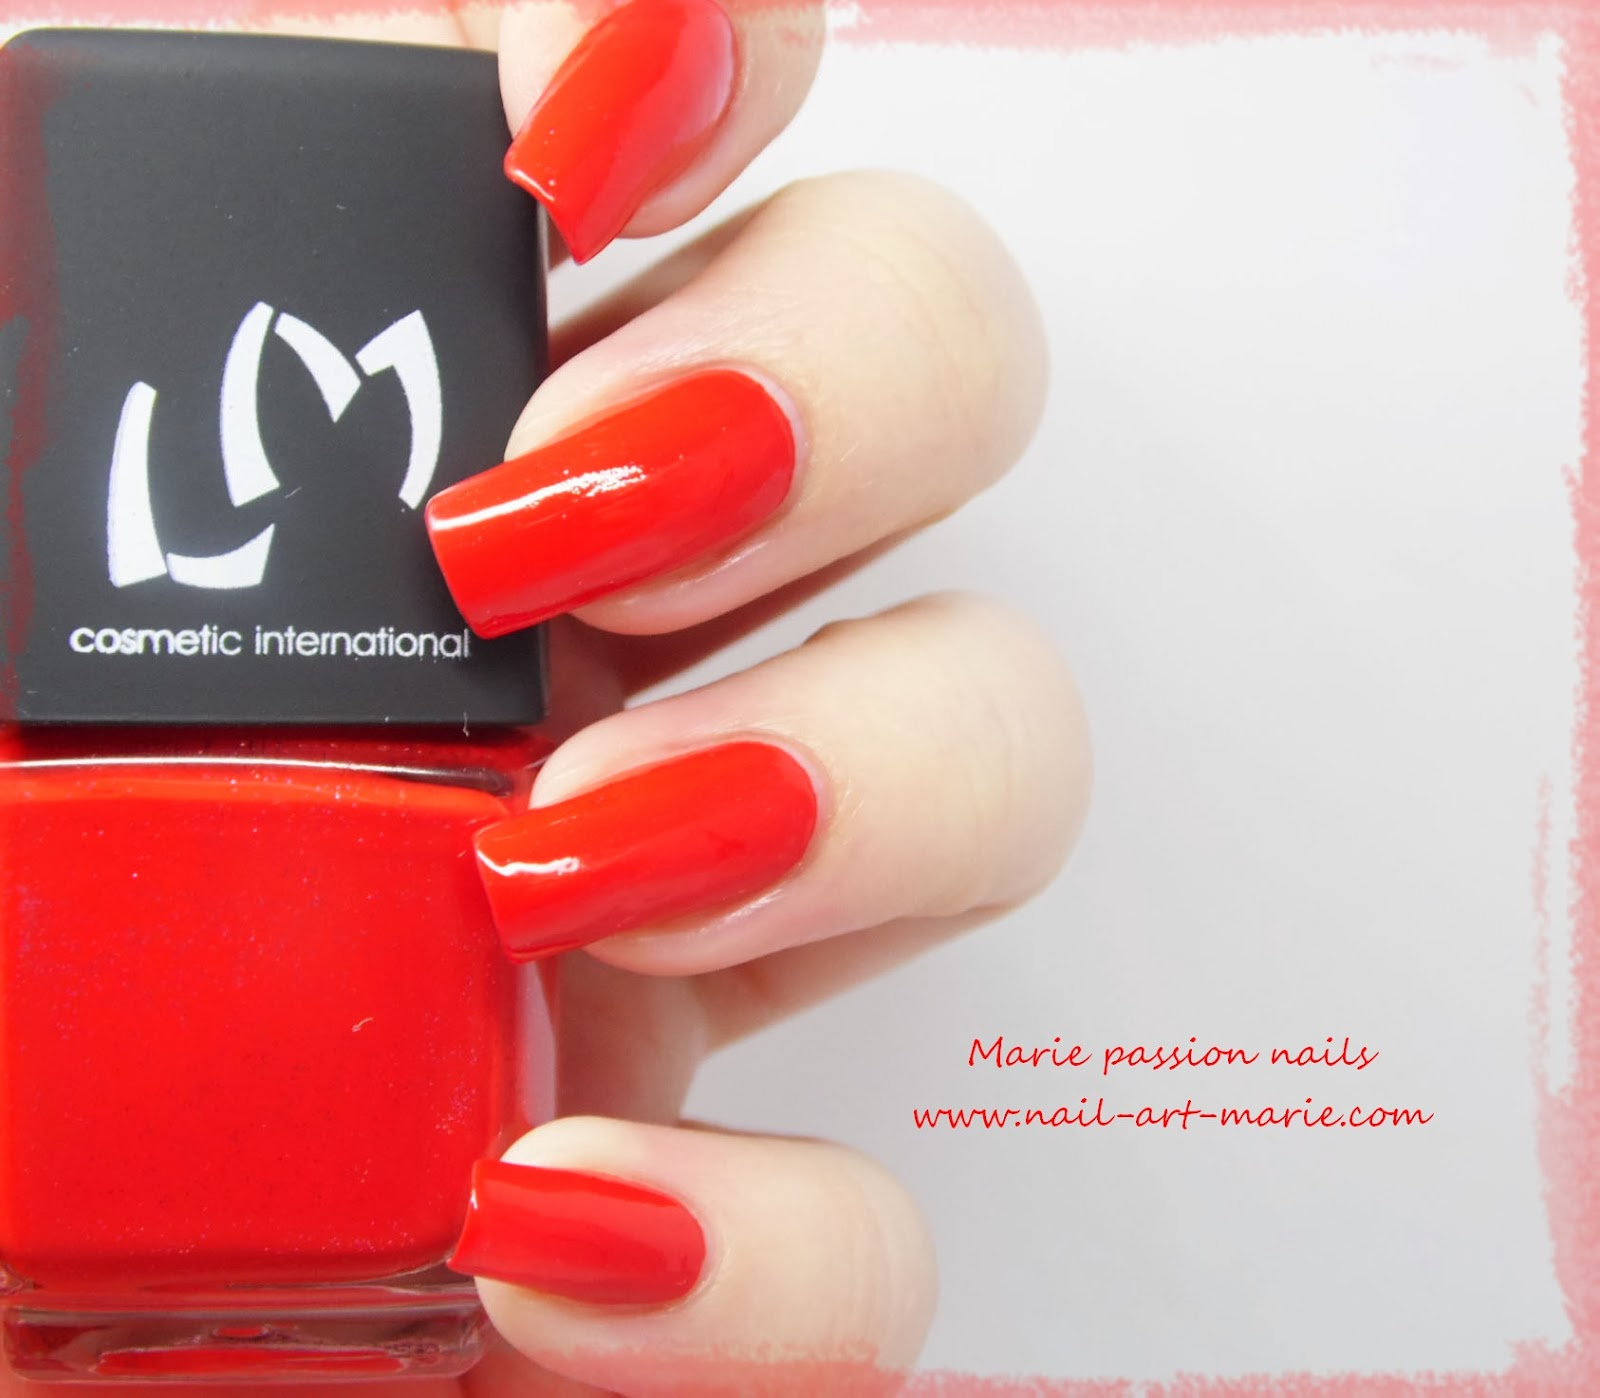 LM Cosmetic Commedia3